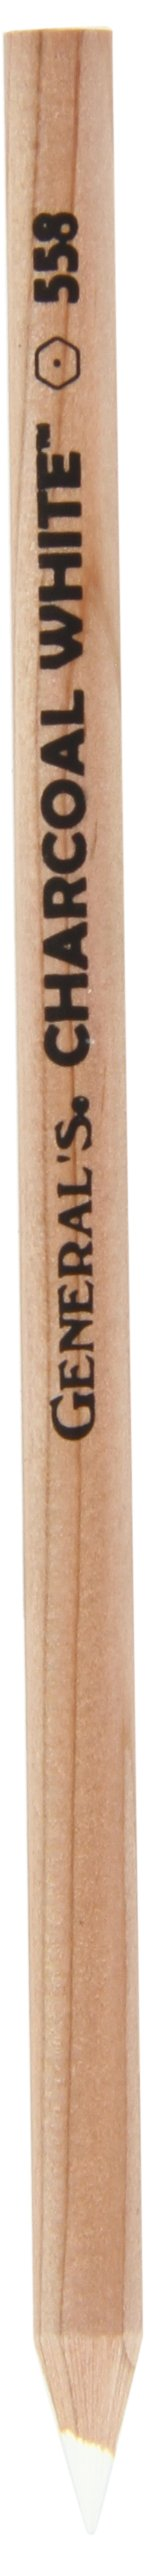 General's Charcoal White Pencil, Number 2 558, Pack of 12 by GENERAL'S